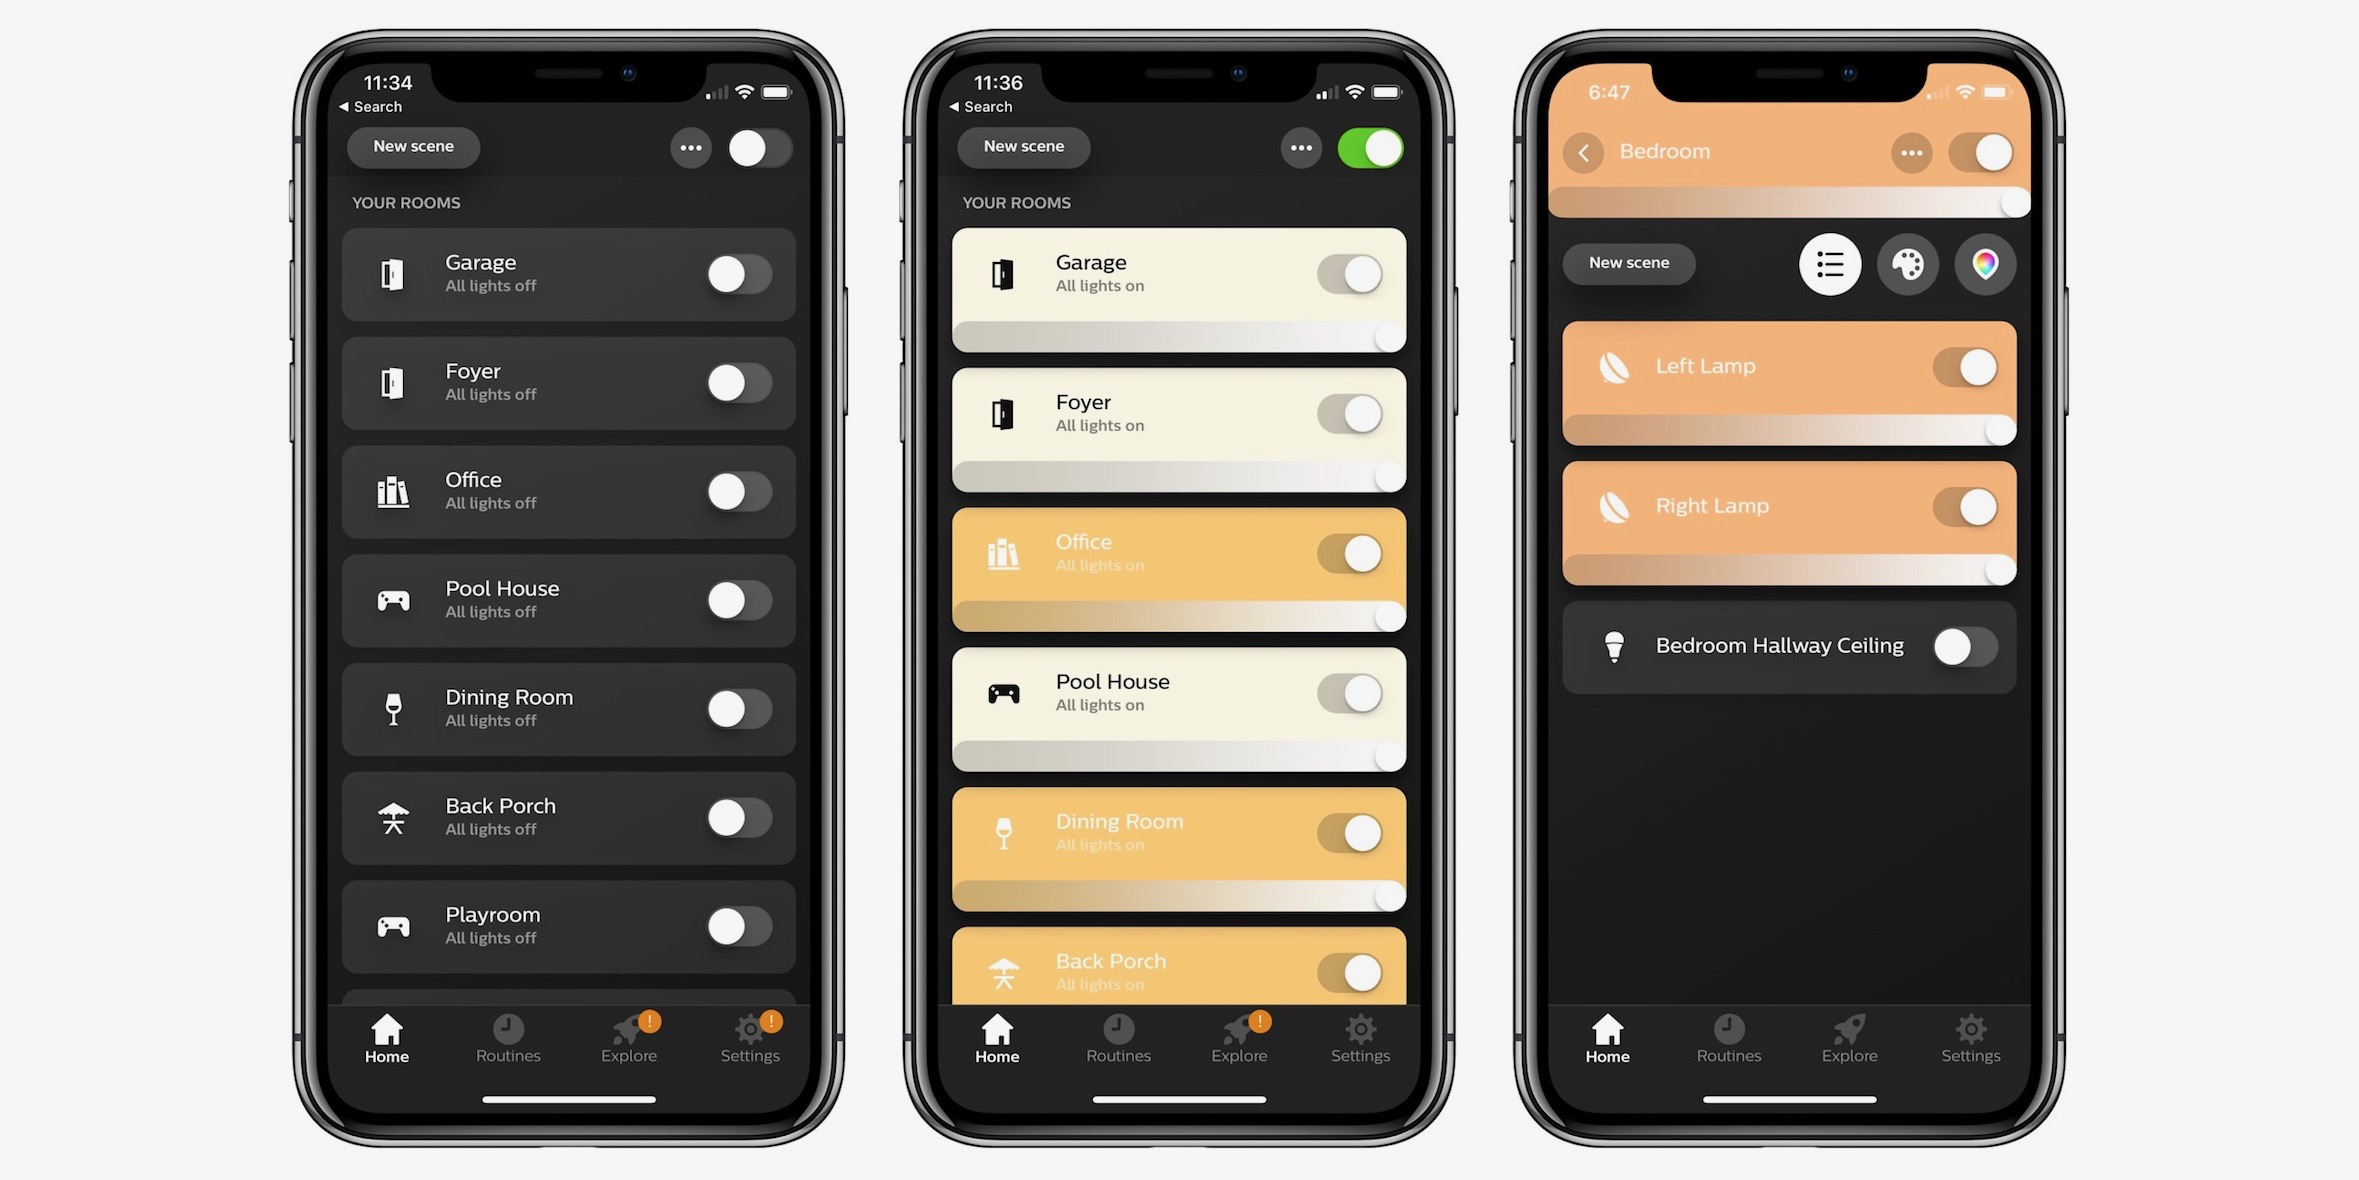 iphone controlled lighting mood lighting philips hue upgrades smart lighting app with refined design fast controls photo scenes